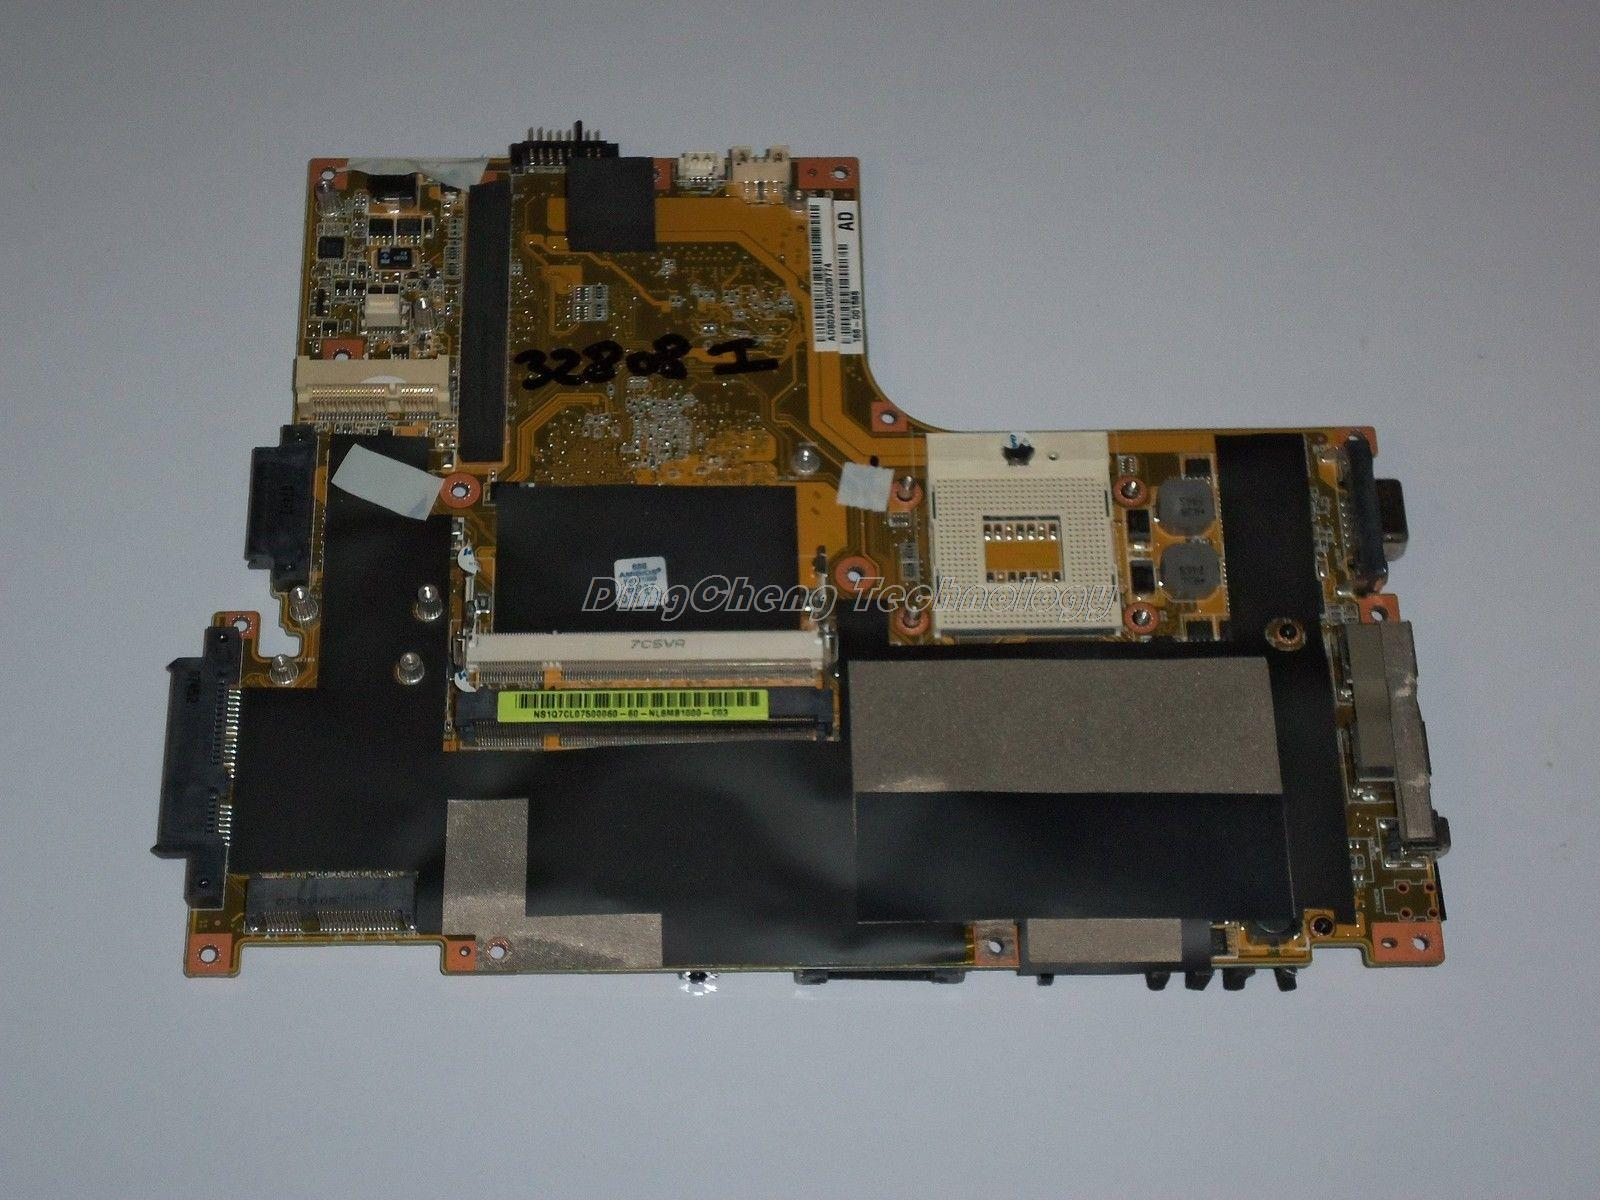 SHELI laptop Motherboard/mainboard for Lenovo Y510 Y510A with 4 video chips non-integrated graphics card DDR2 100% tested Fully sheli laptop motherboard mainboard for lenovo e46 e46g with integrated graphics card ddr3 100